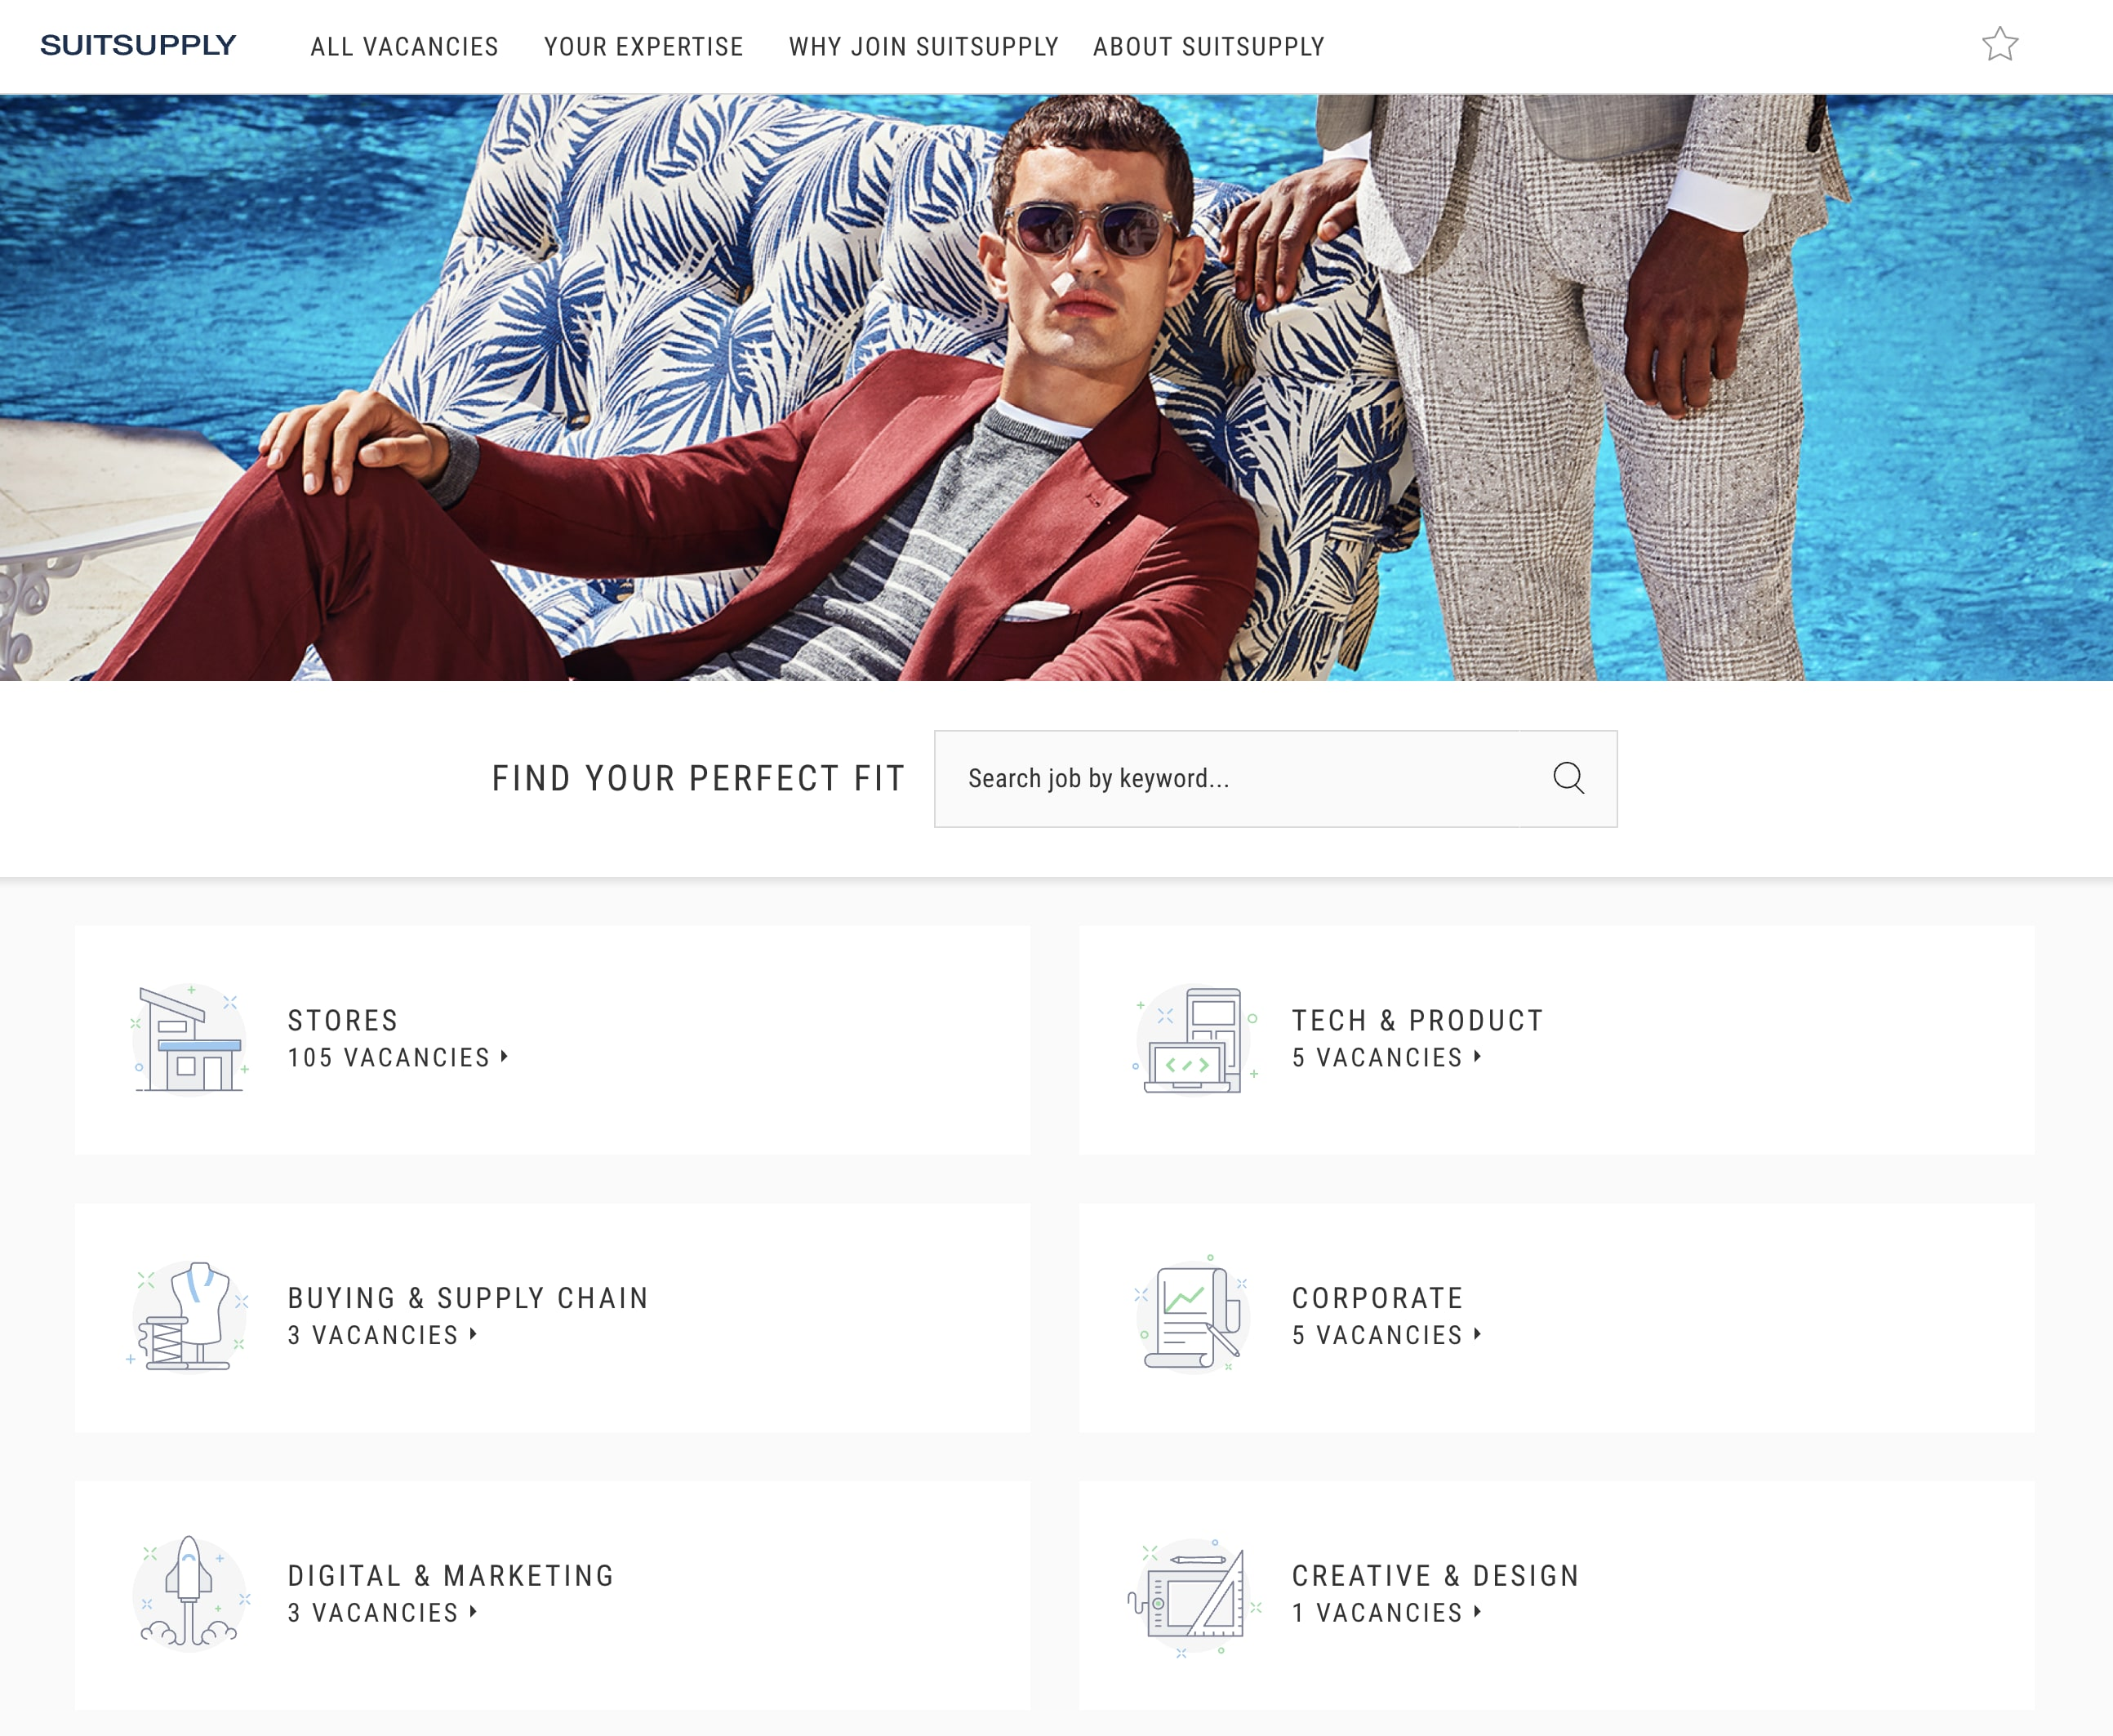 Suitsupply Career Page Example